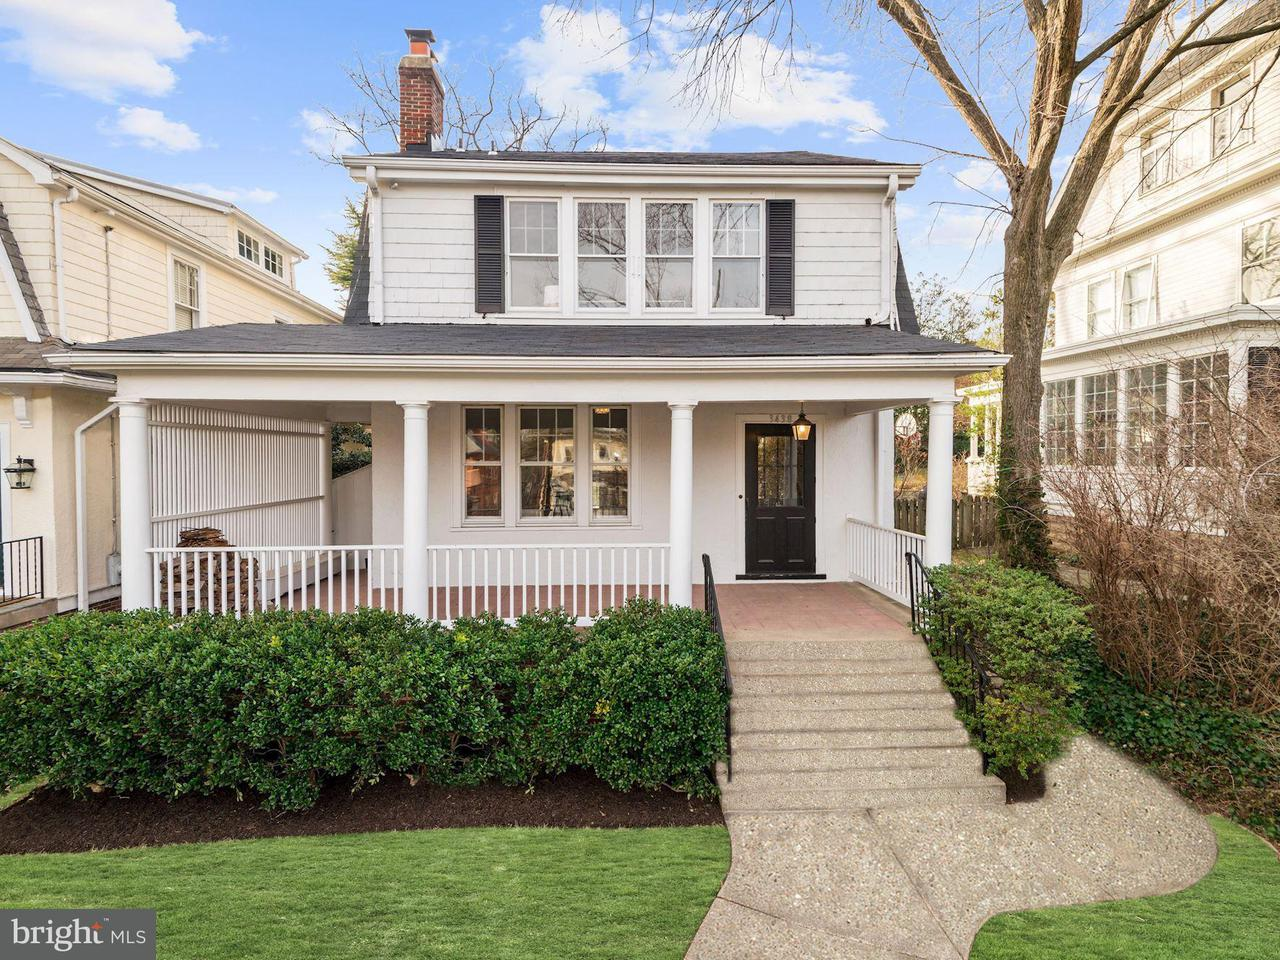 Single Family Home for Sale at 3438 34th Pl Nw 3438 34th Pl Nw Washington, District Of Columbia 20016 United States